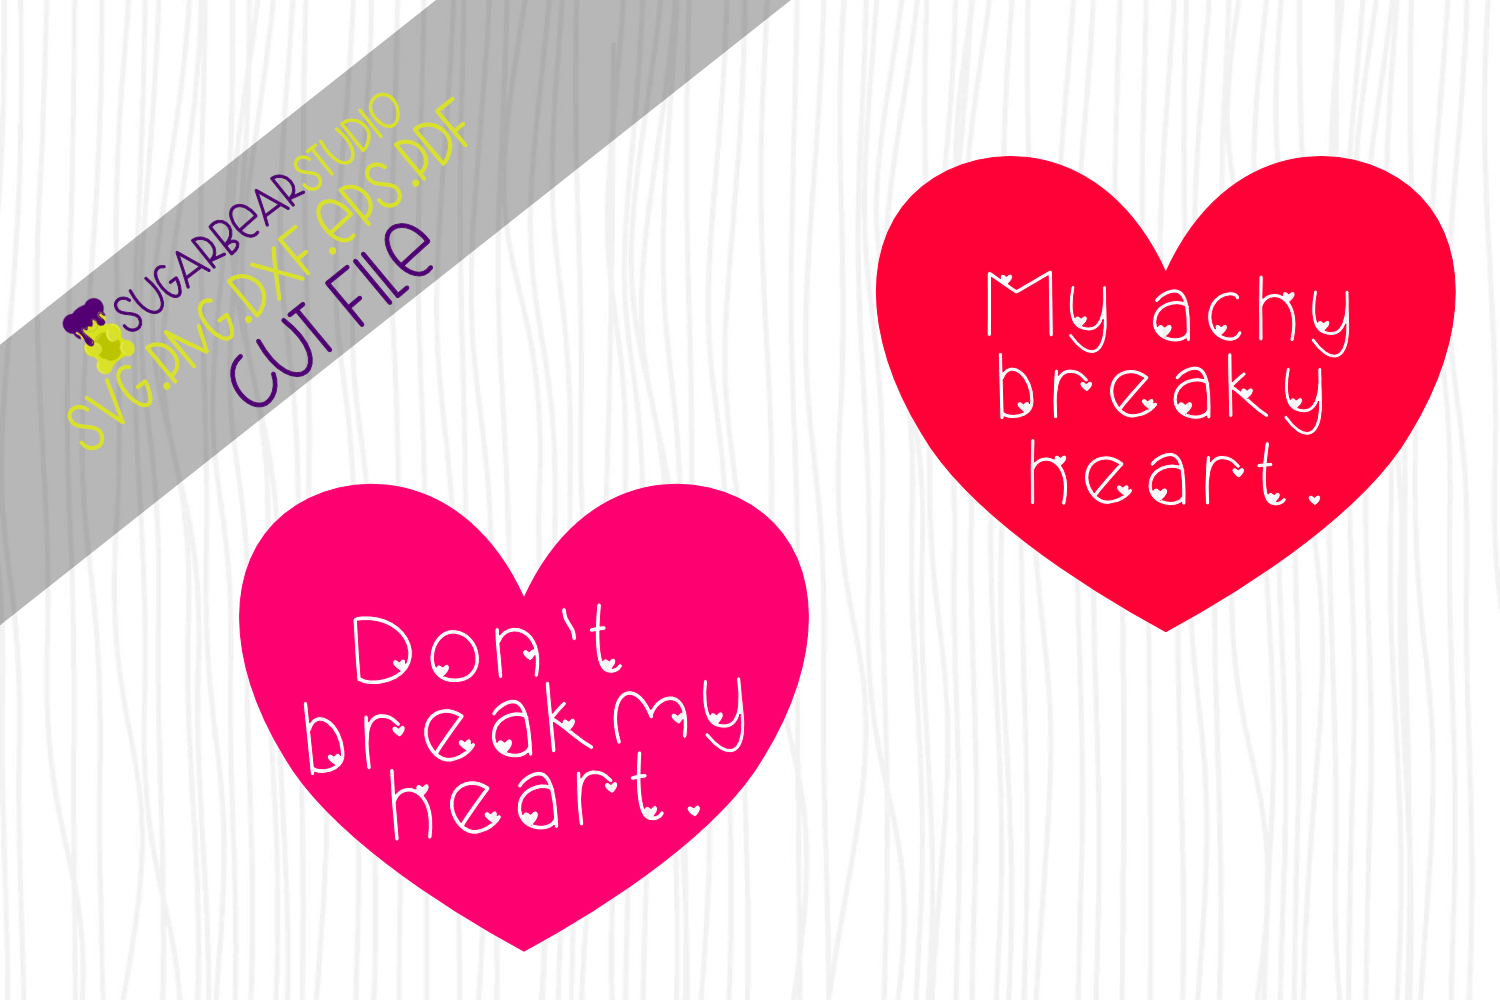 Download Free Achy Breaky Heart Svg Grafico Por Sugarbearstudio Creative Fabrica for Cricut Explore, Silhouette and other cutting machines.